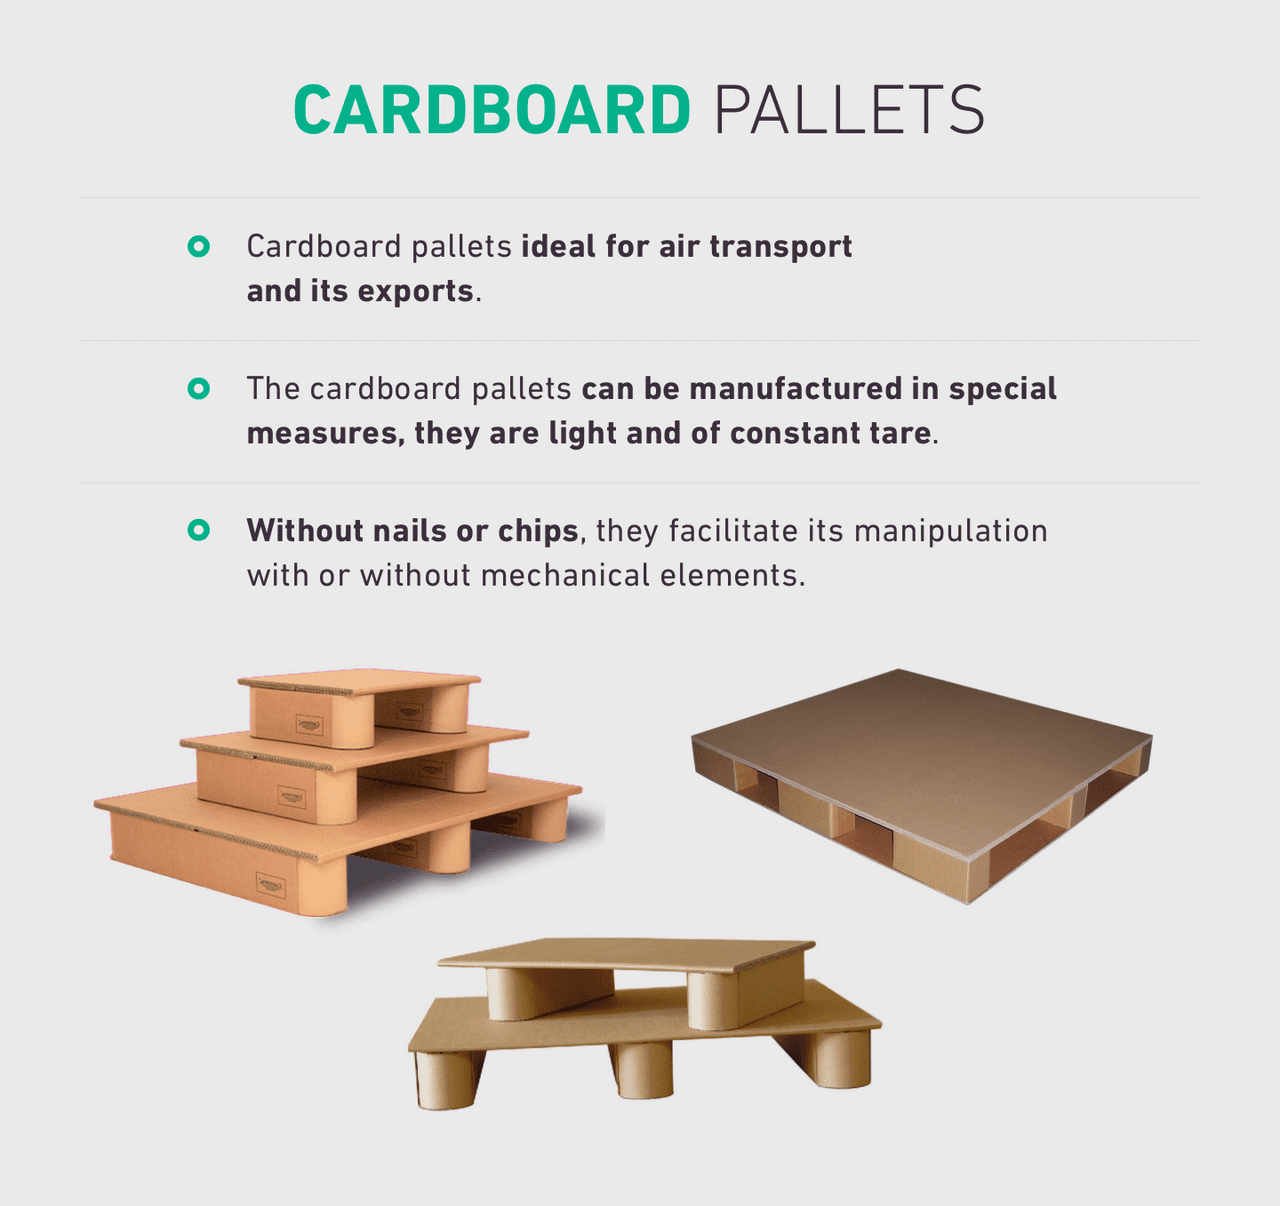 Cardboard pallets ideal for air transport and its exports. The cardboard pallets can be manufactured in special measures, they are light and of constant tare. Without nails or chips, they facilitate its manipulation with or without mechanical elements.